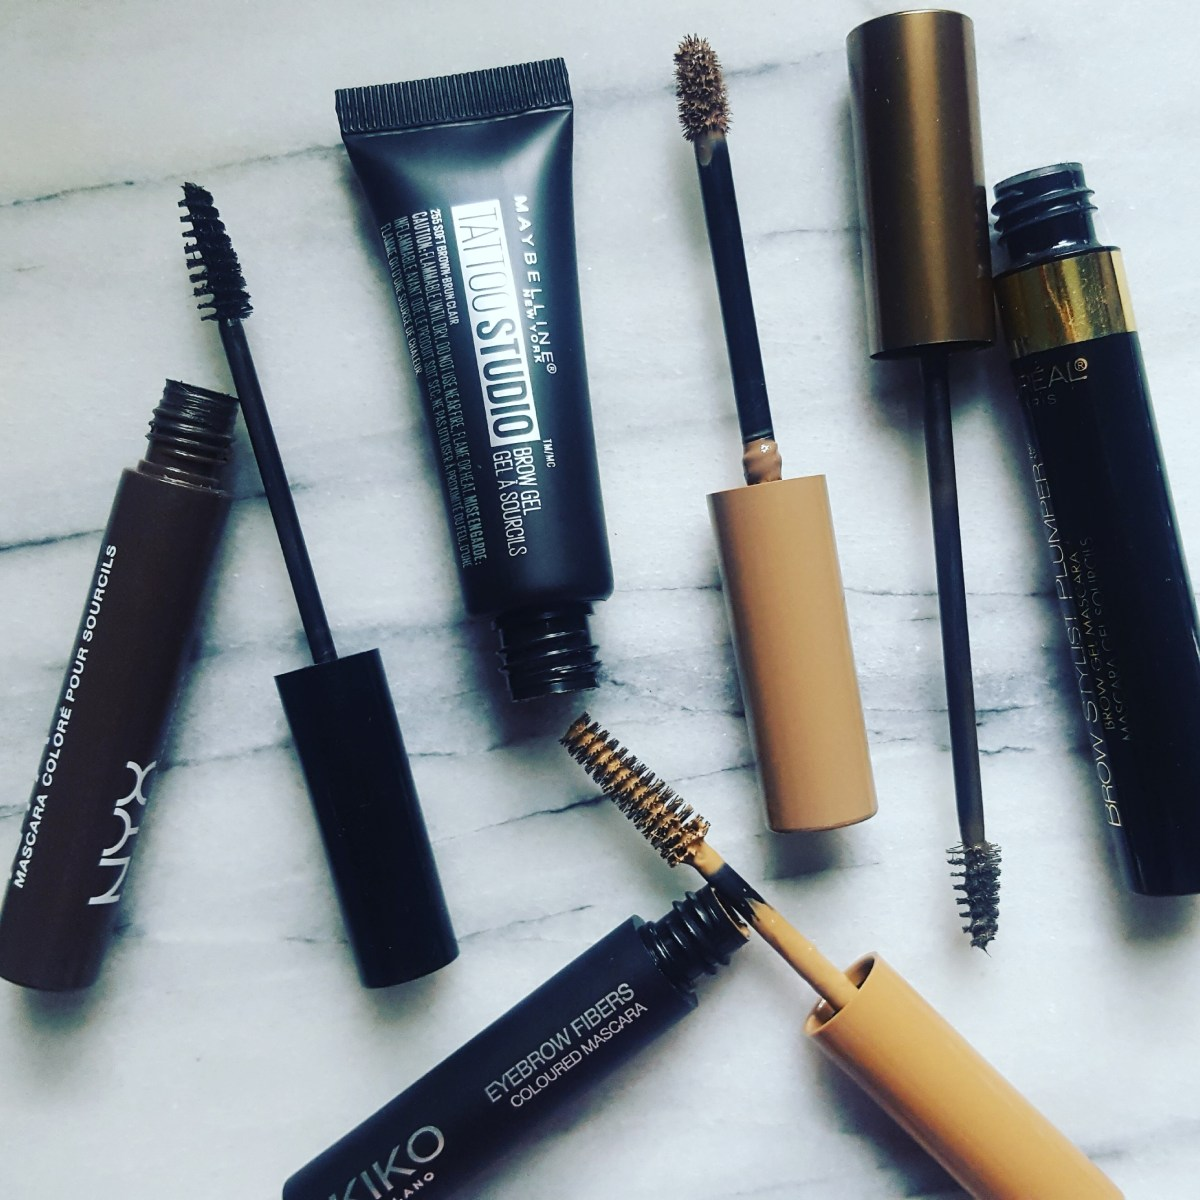 What is worth your coins? A shopping guide to affordable brow mascaras